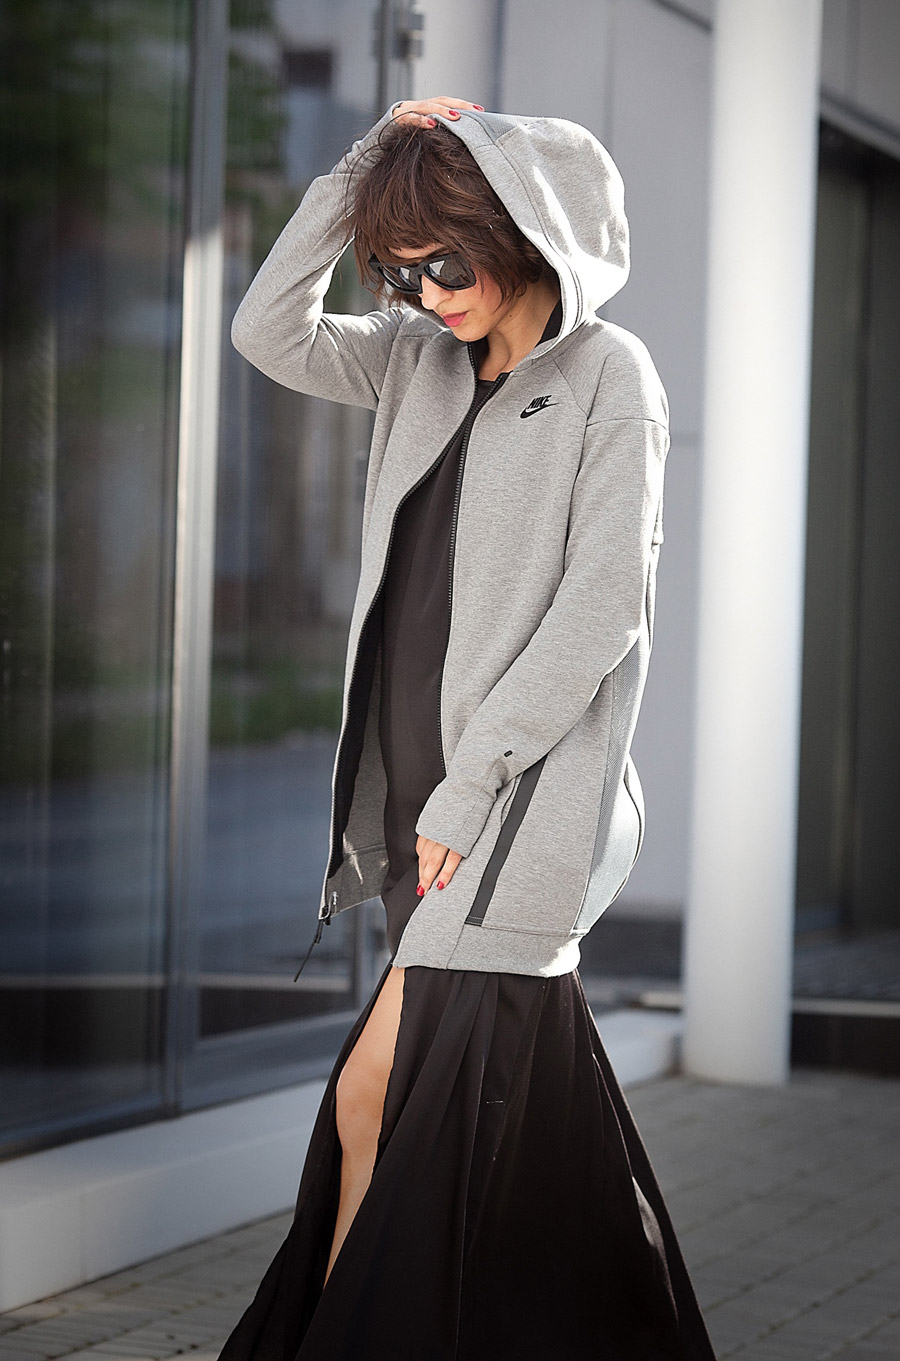 nike-sweetshirt-outfit